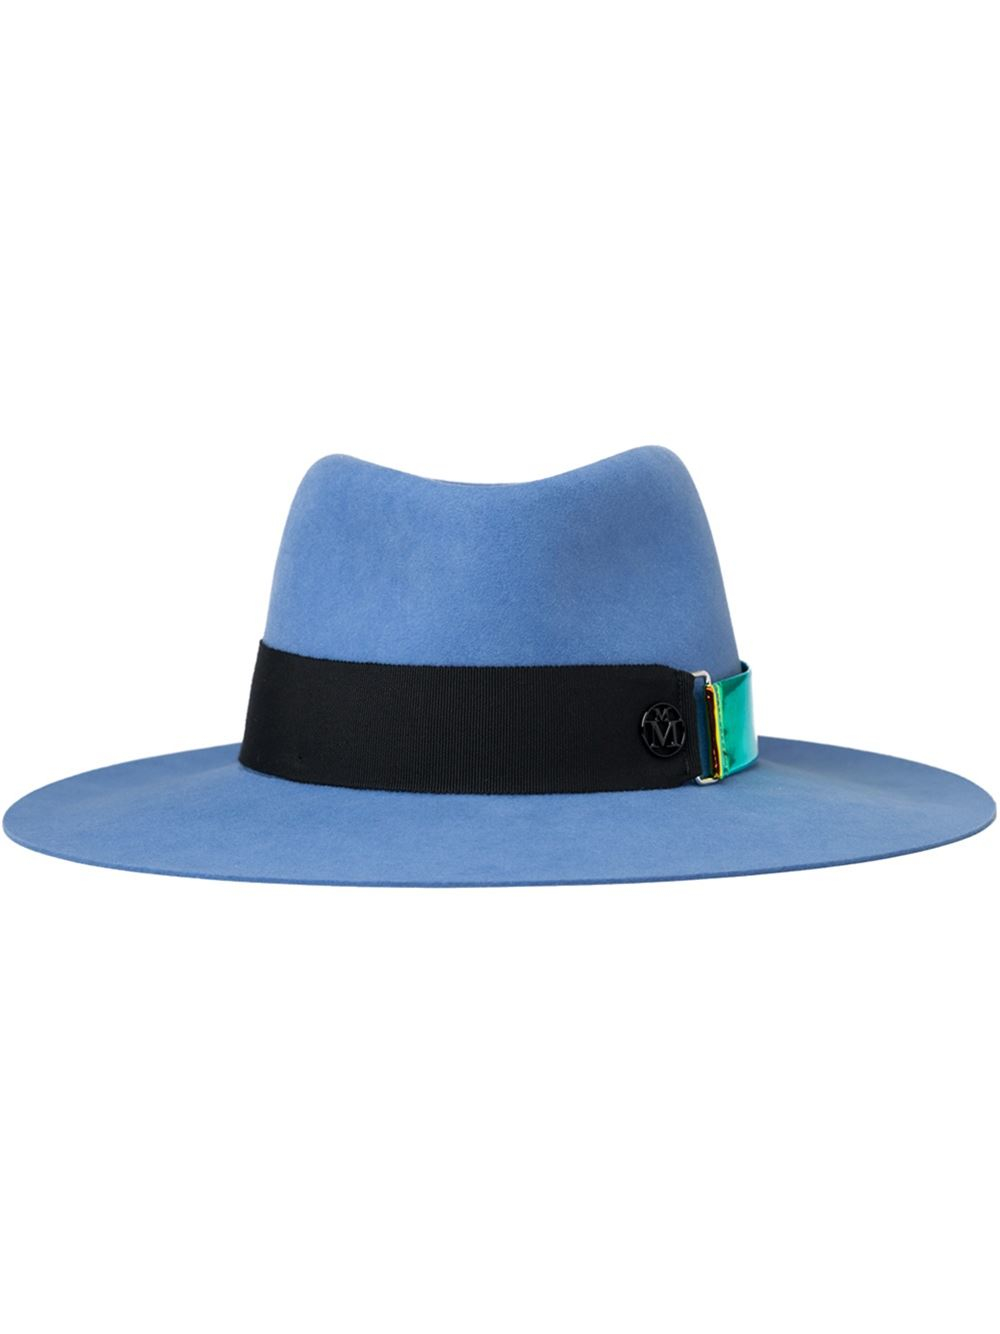 Maison michel 39 charles 39 hat in blue lyst for Maison michel